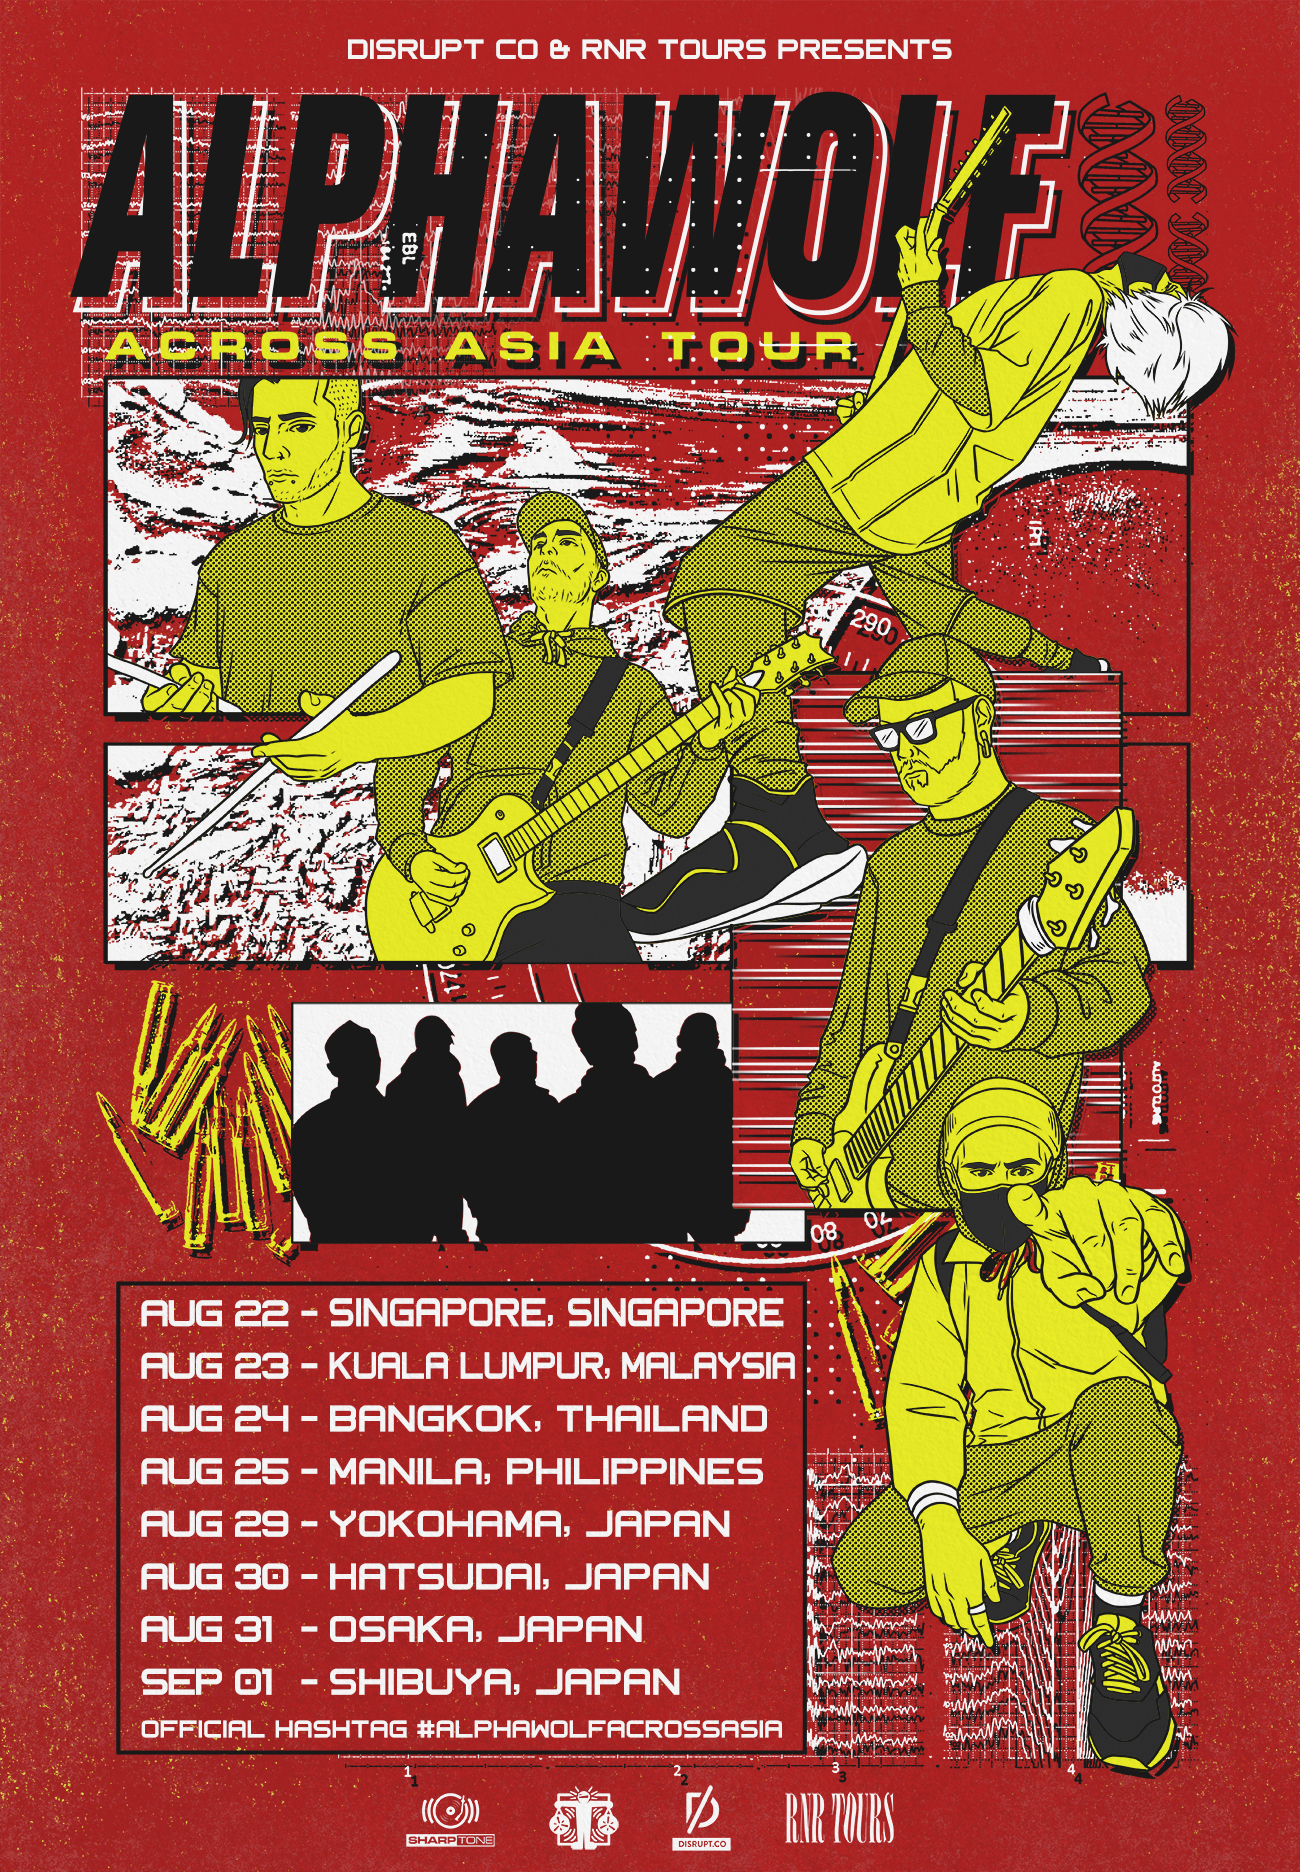 Alpha Wolf announce Asia tour – Shows in Singapore, Kuala